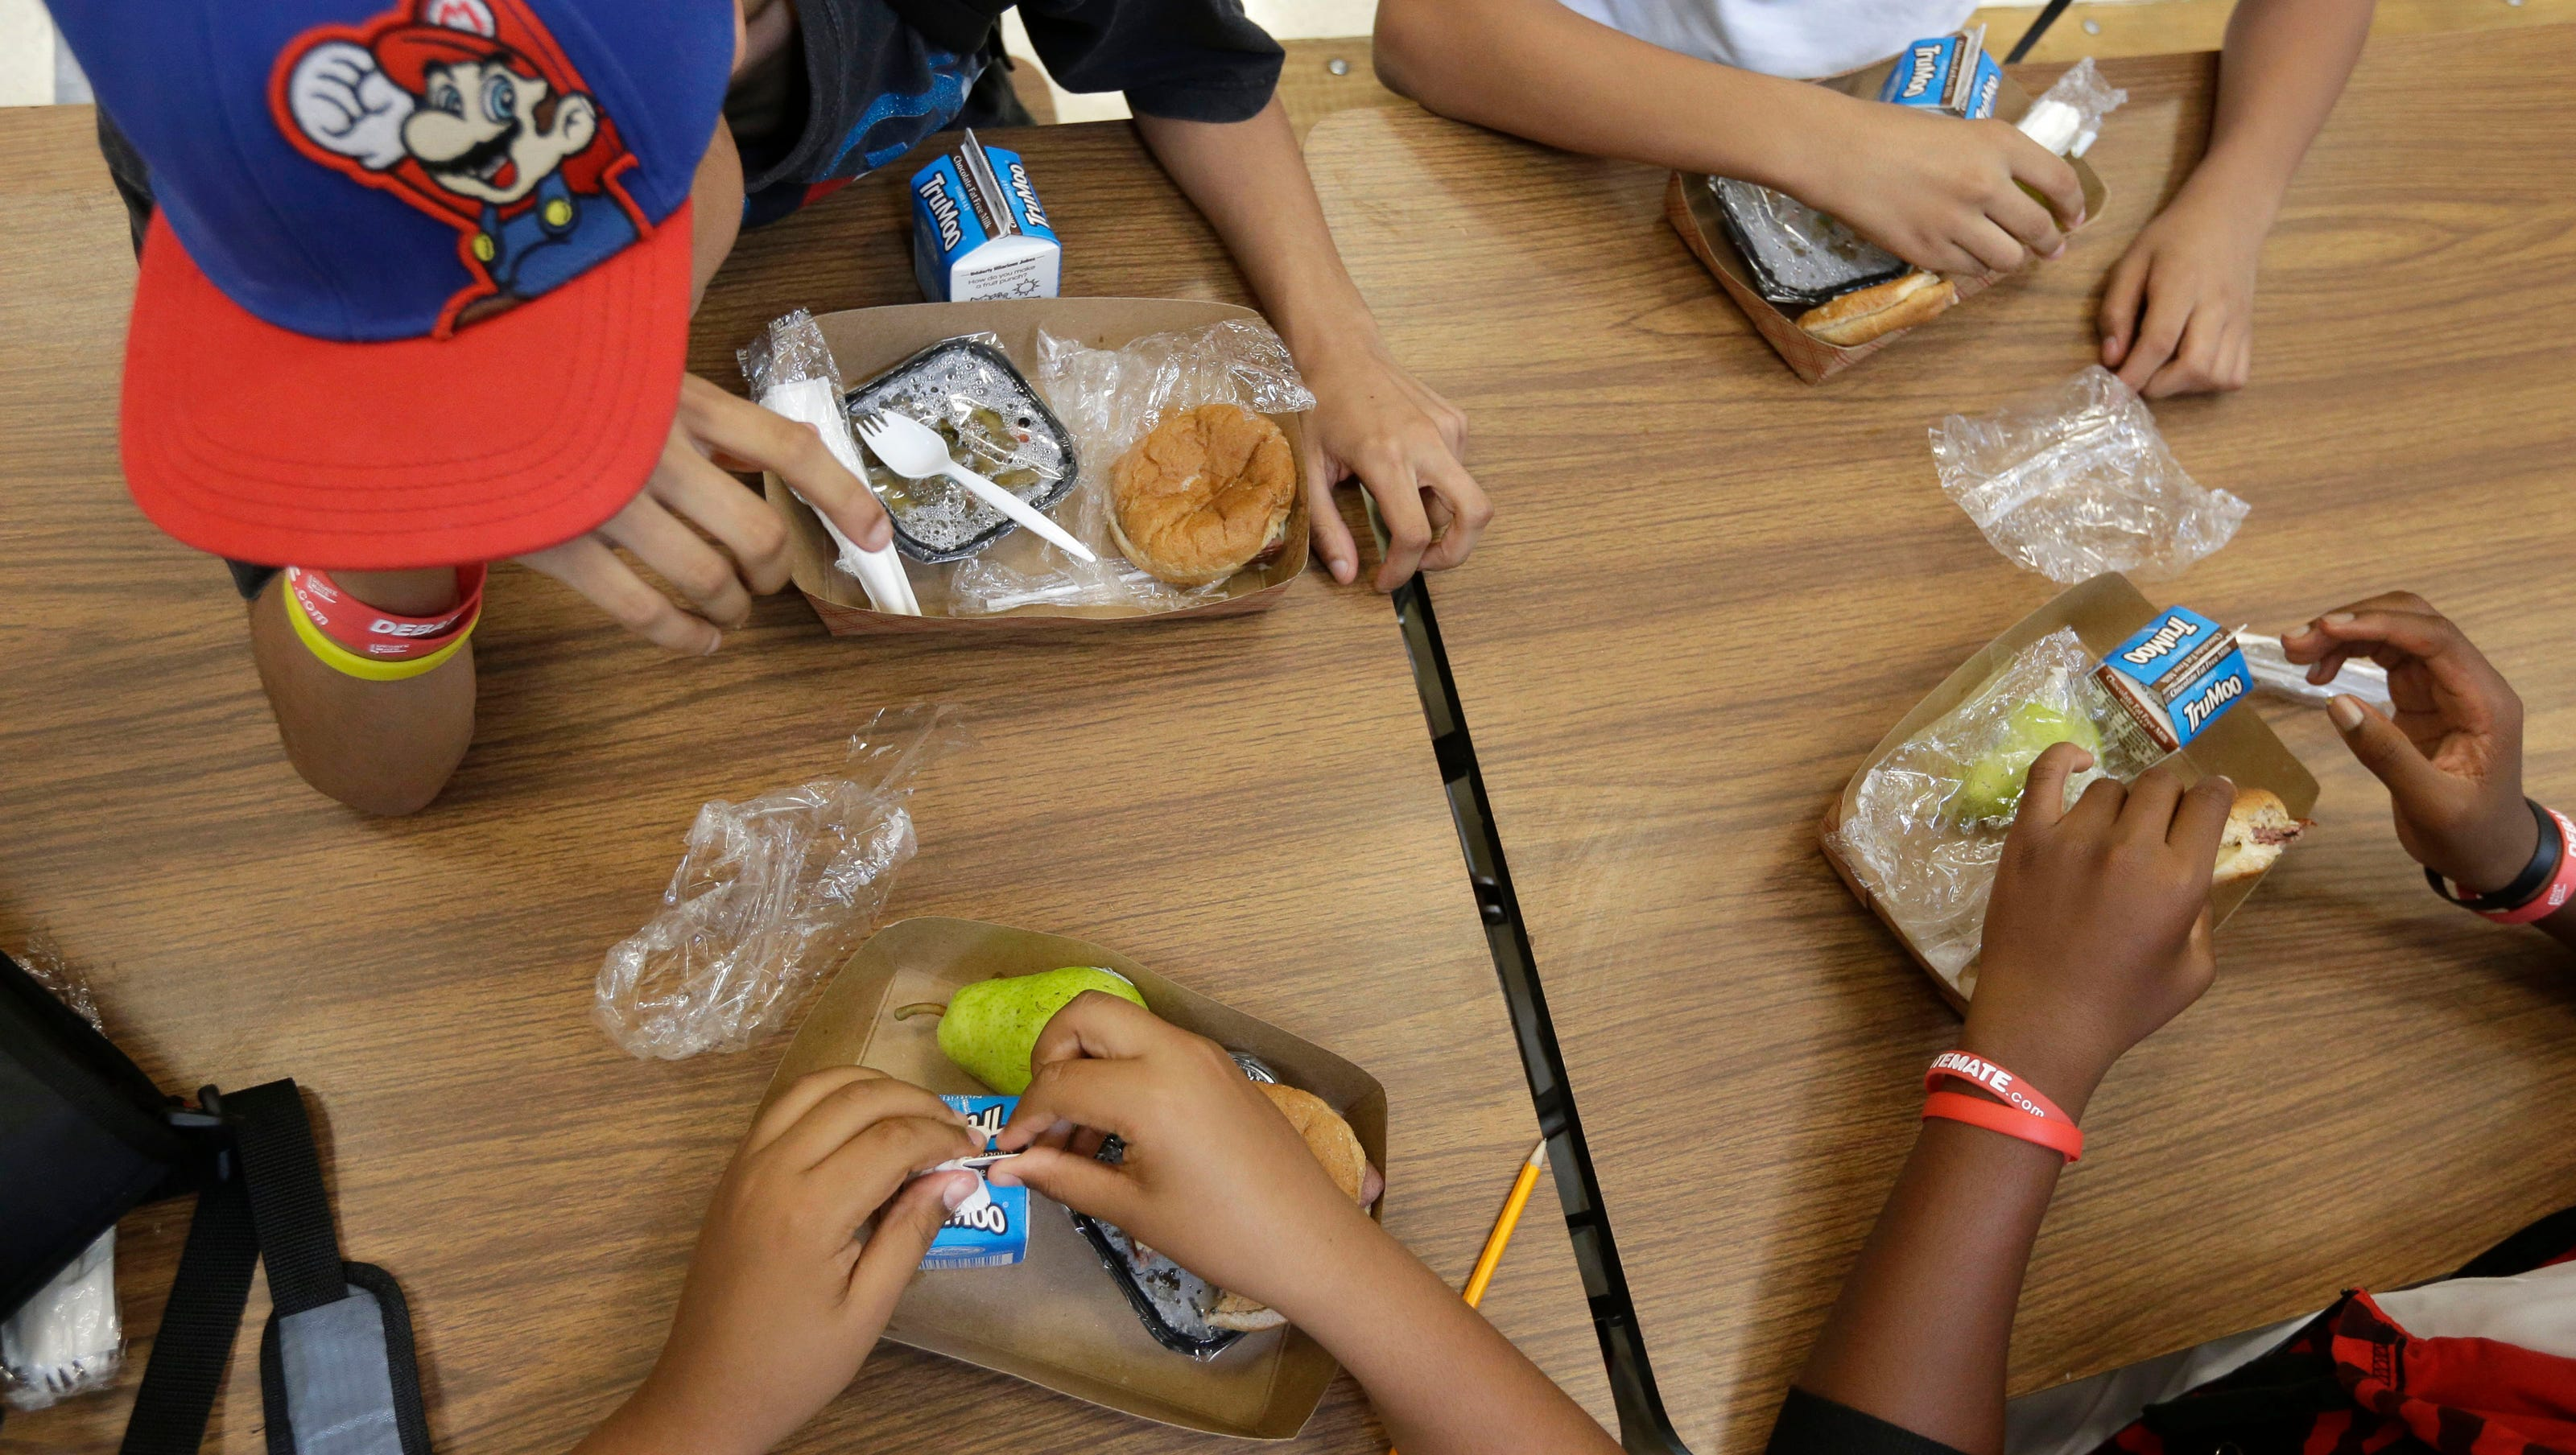 'Sitting in class hungry': Schools wary of Trump plan to end free school lunches for some